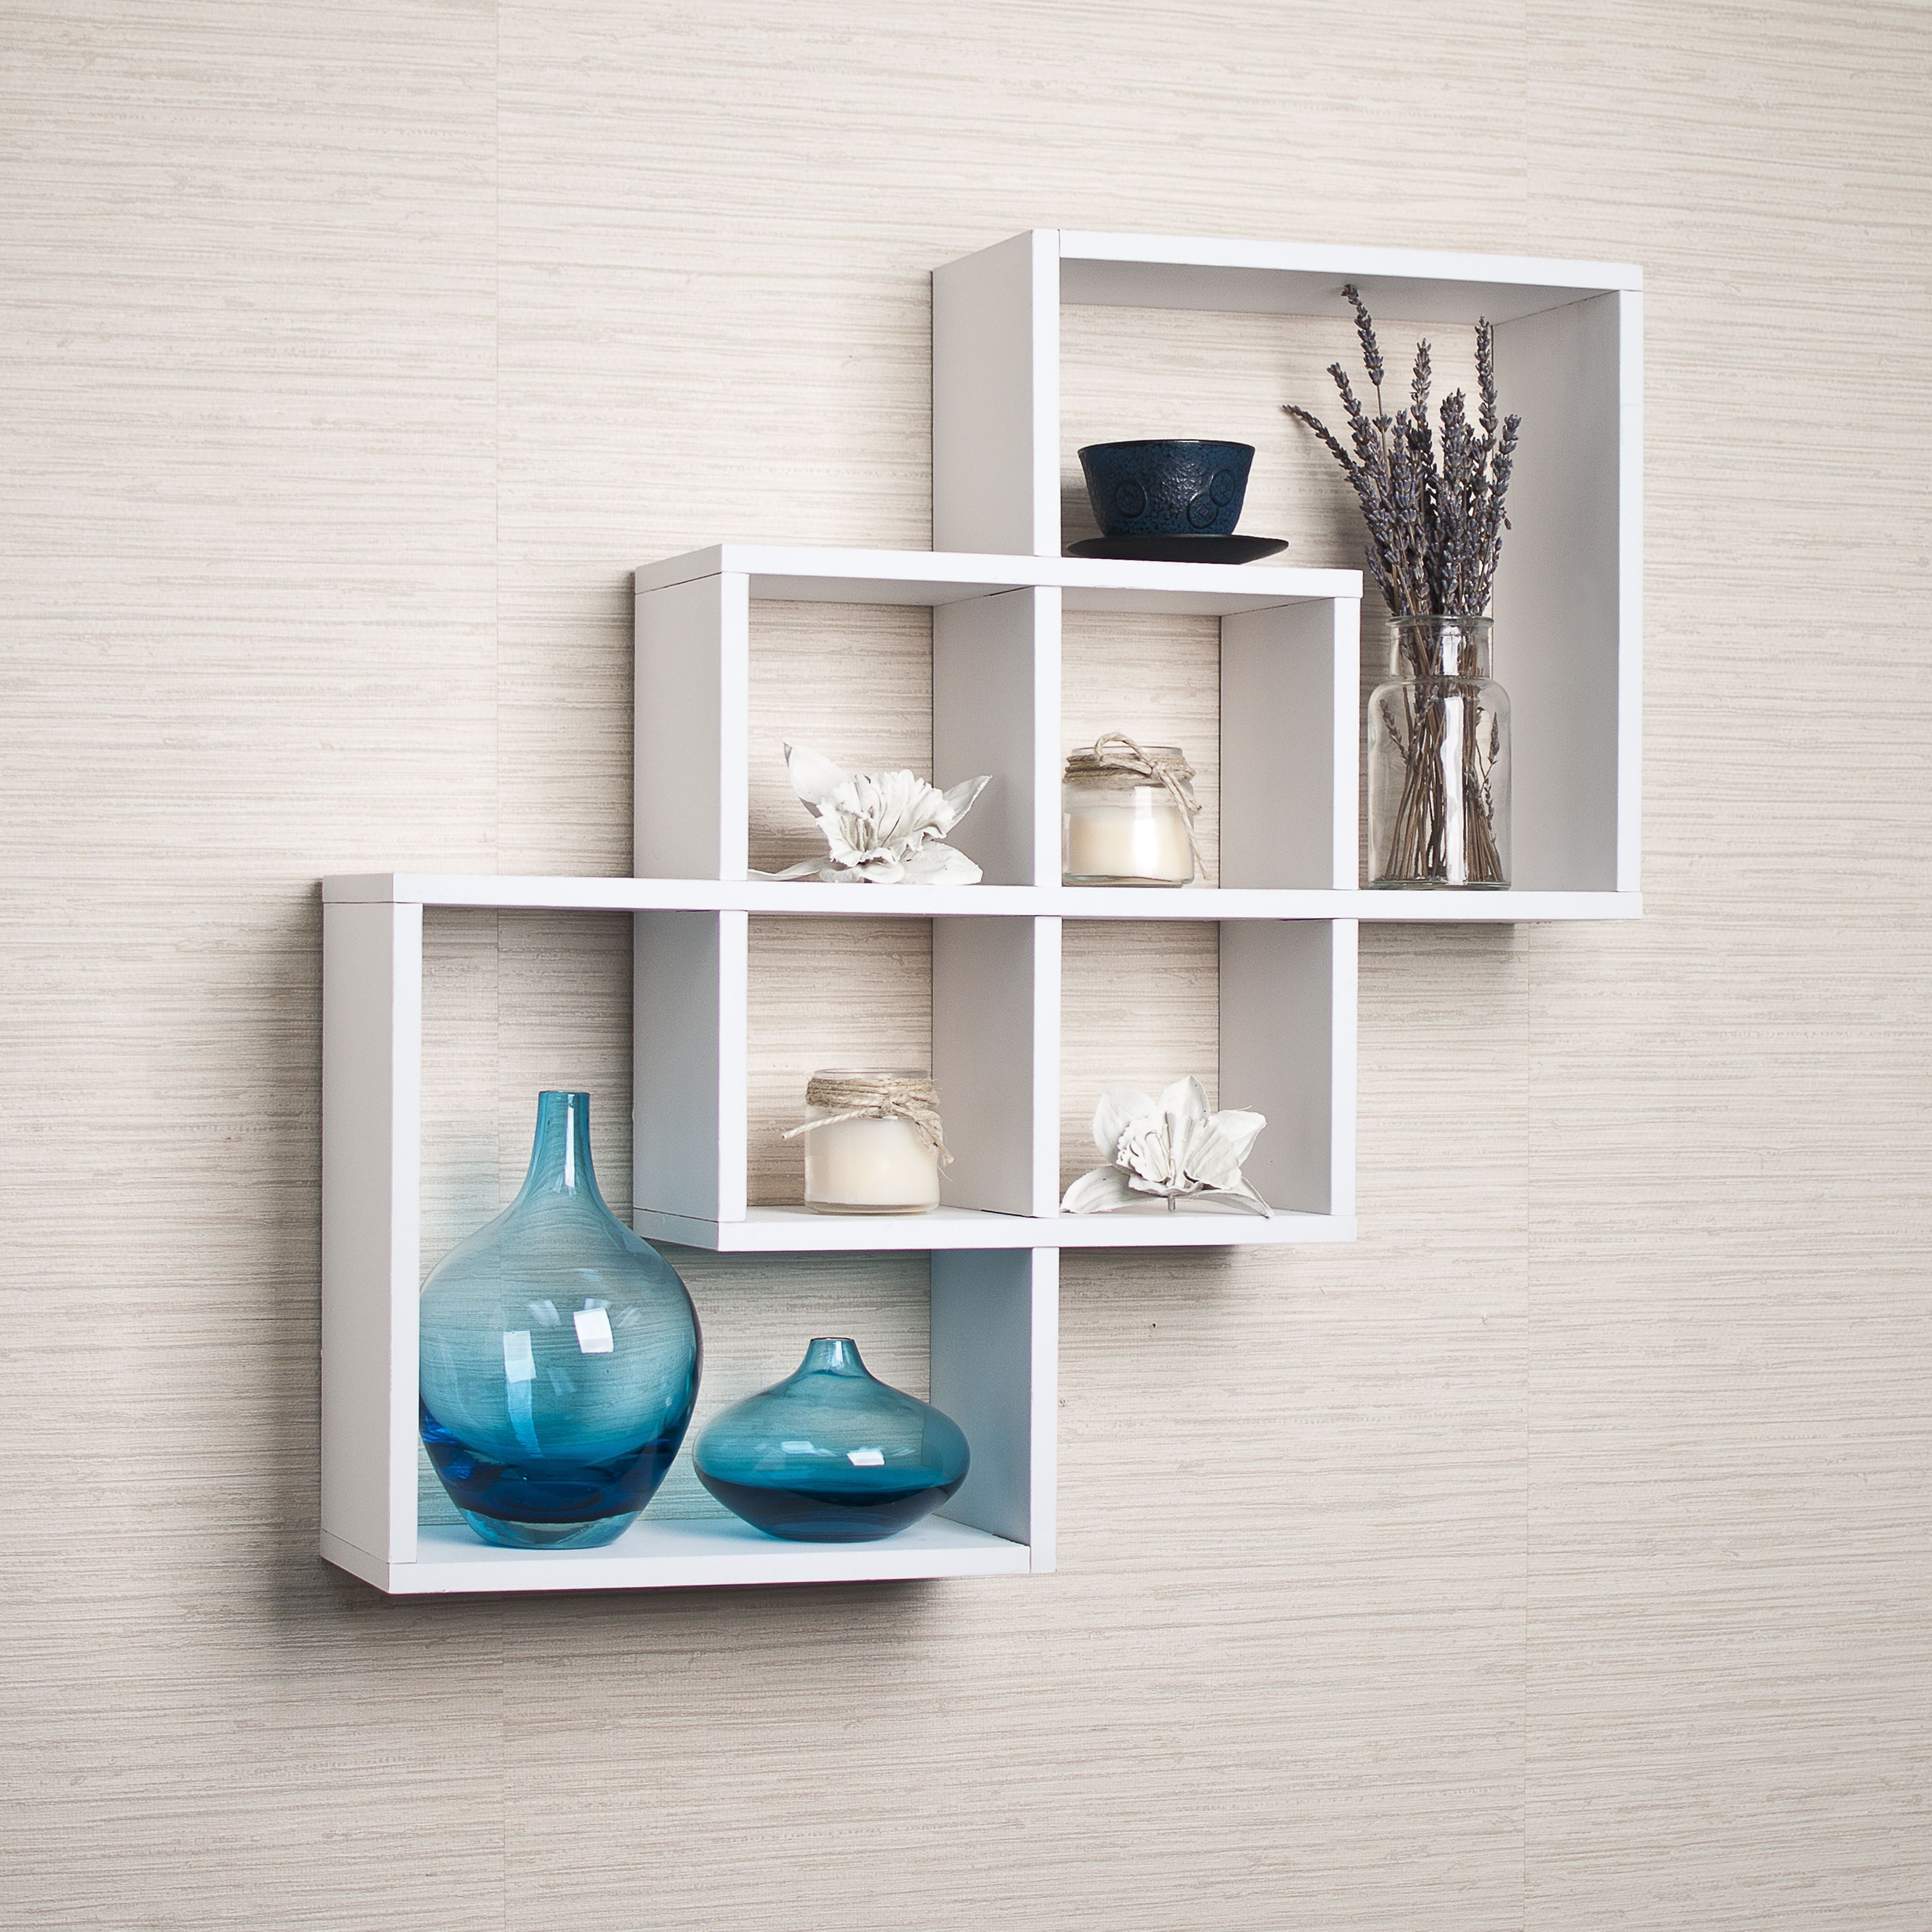 Decorative Wall Shelvf Shows 3 Boxes That Intersect And Connect With